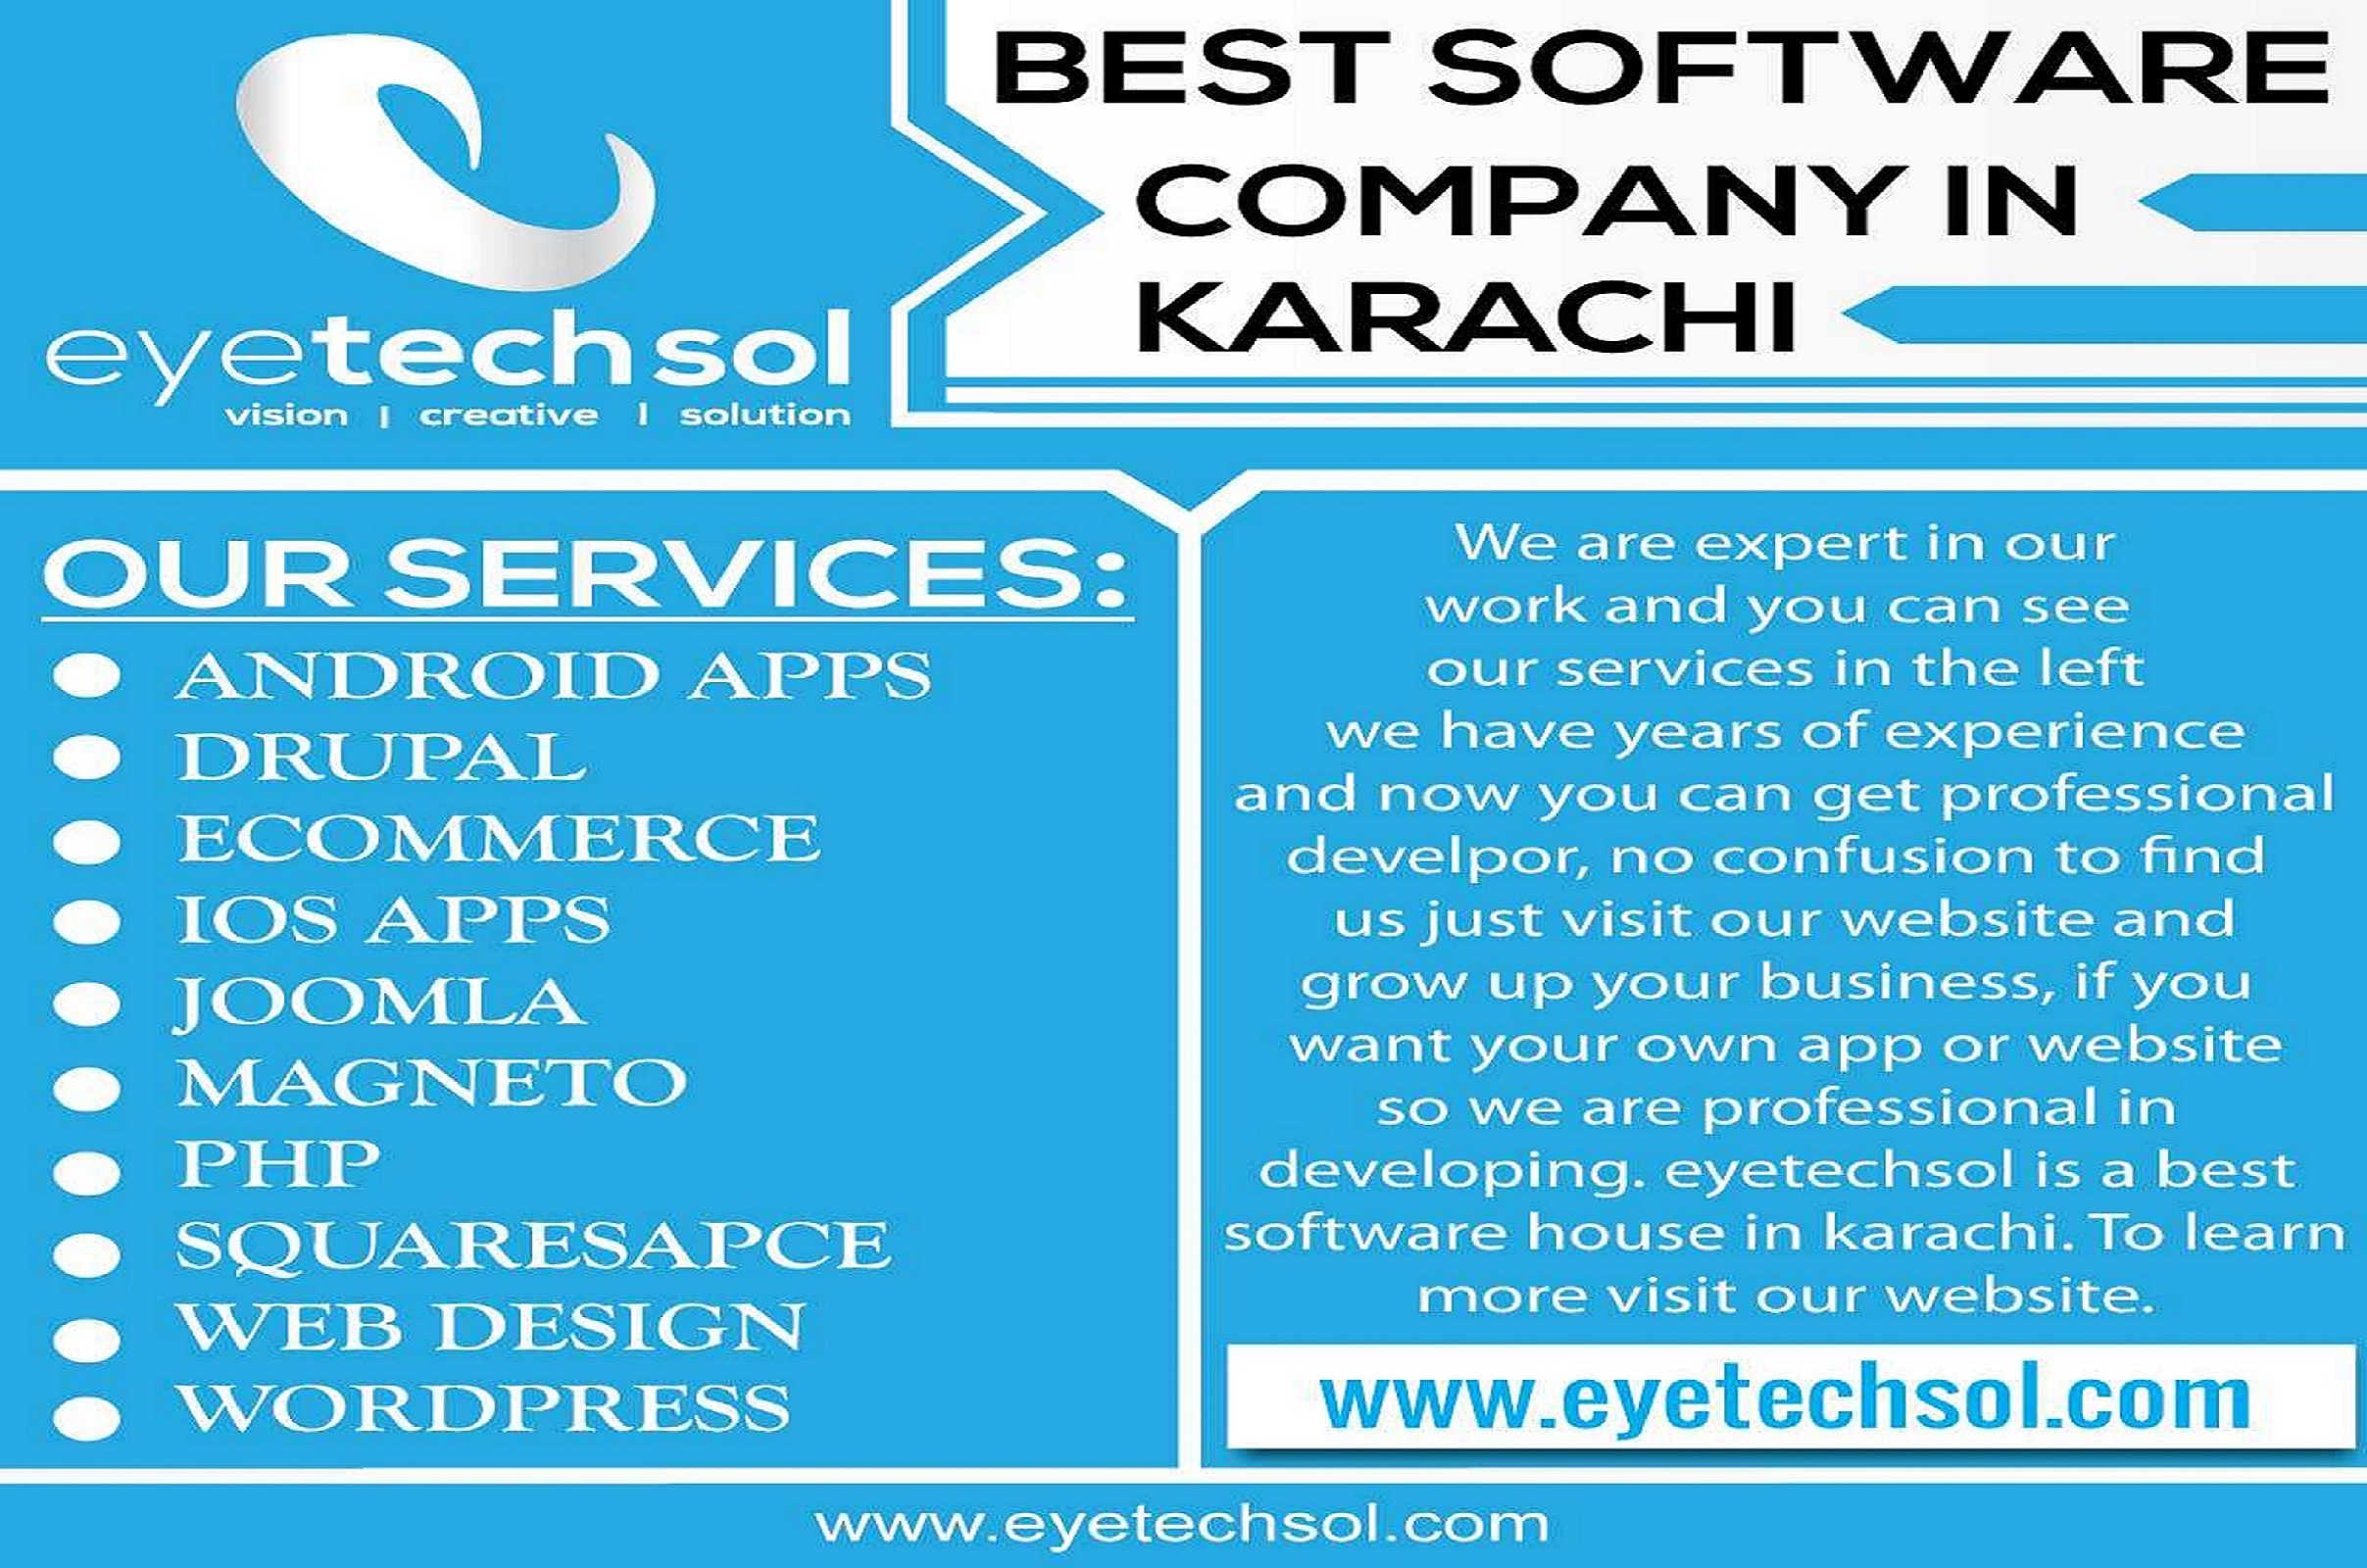 Best Software House in Karachi | Best Development Company in Karachi